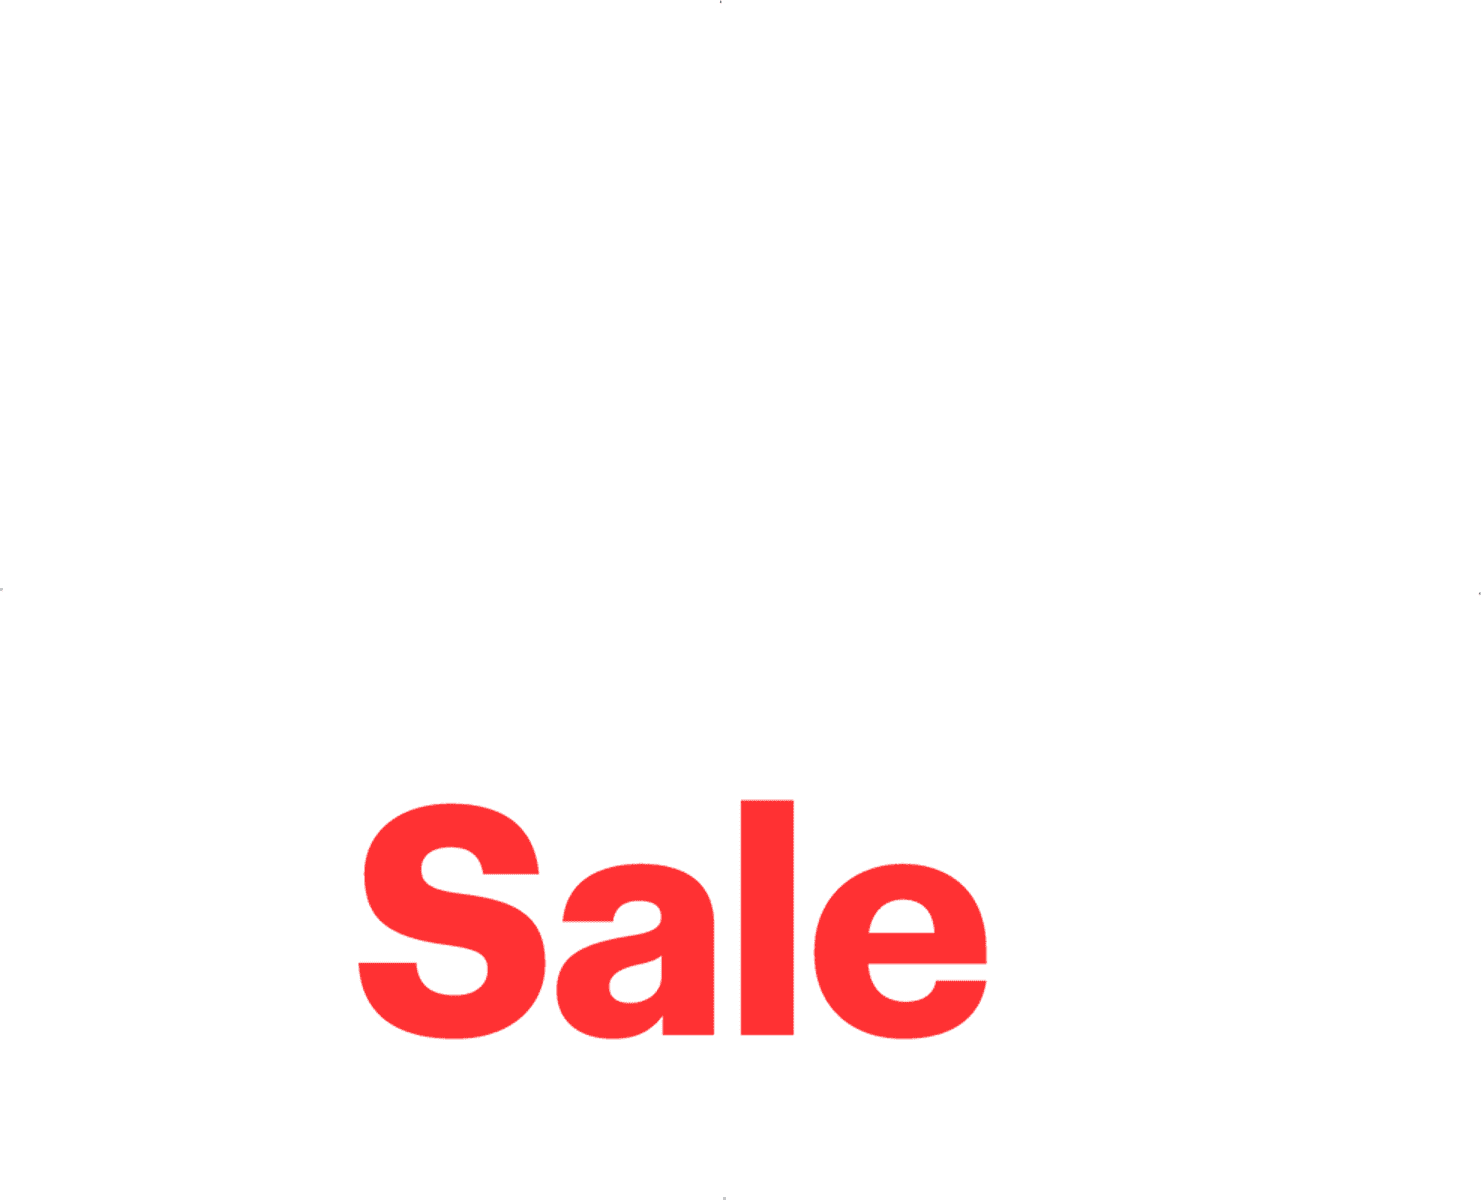 Black Friday Sale 2020 Hottest Black Friday Deals Best Buy Canada